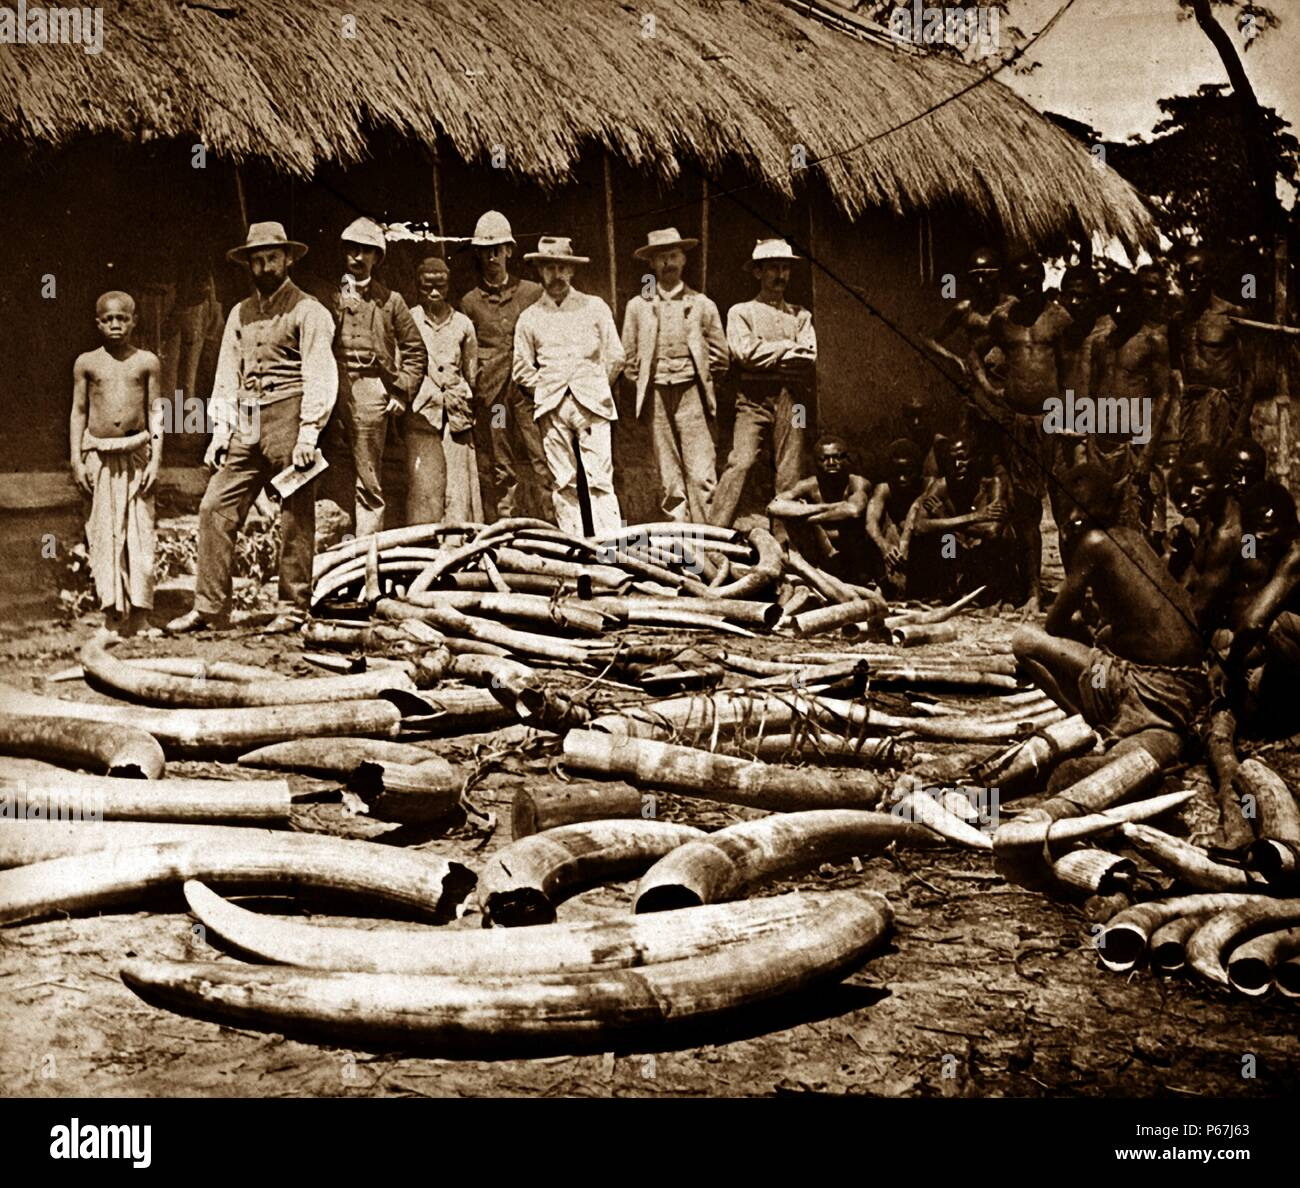 Belgian colonial period Congo. Africa became a centre for ivory hunting from elephants killed for sport;   or ivory 1900 - Stock Image